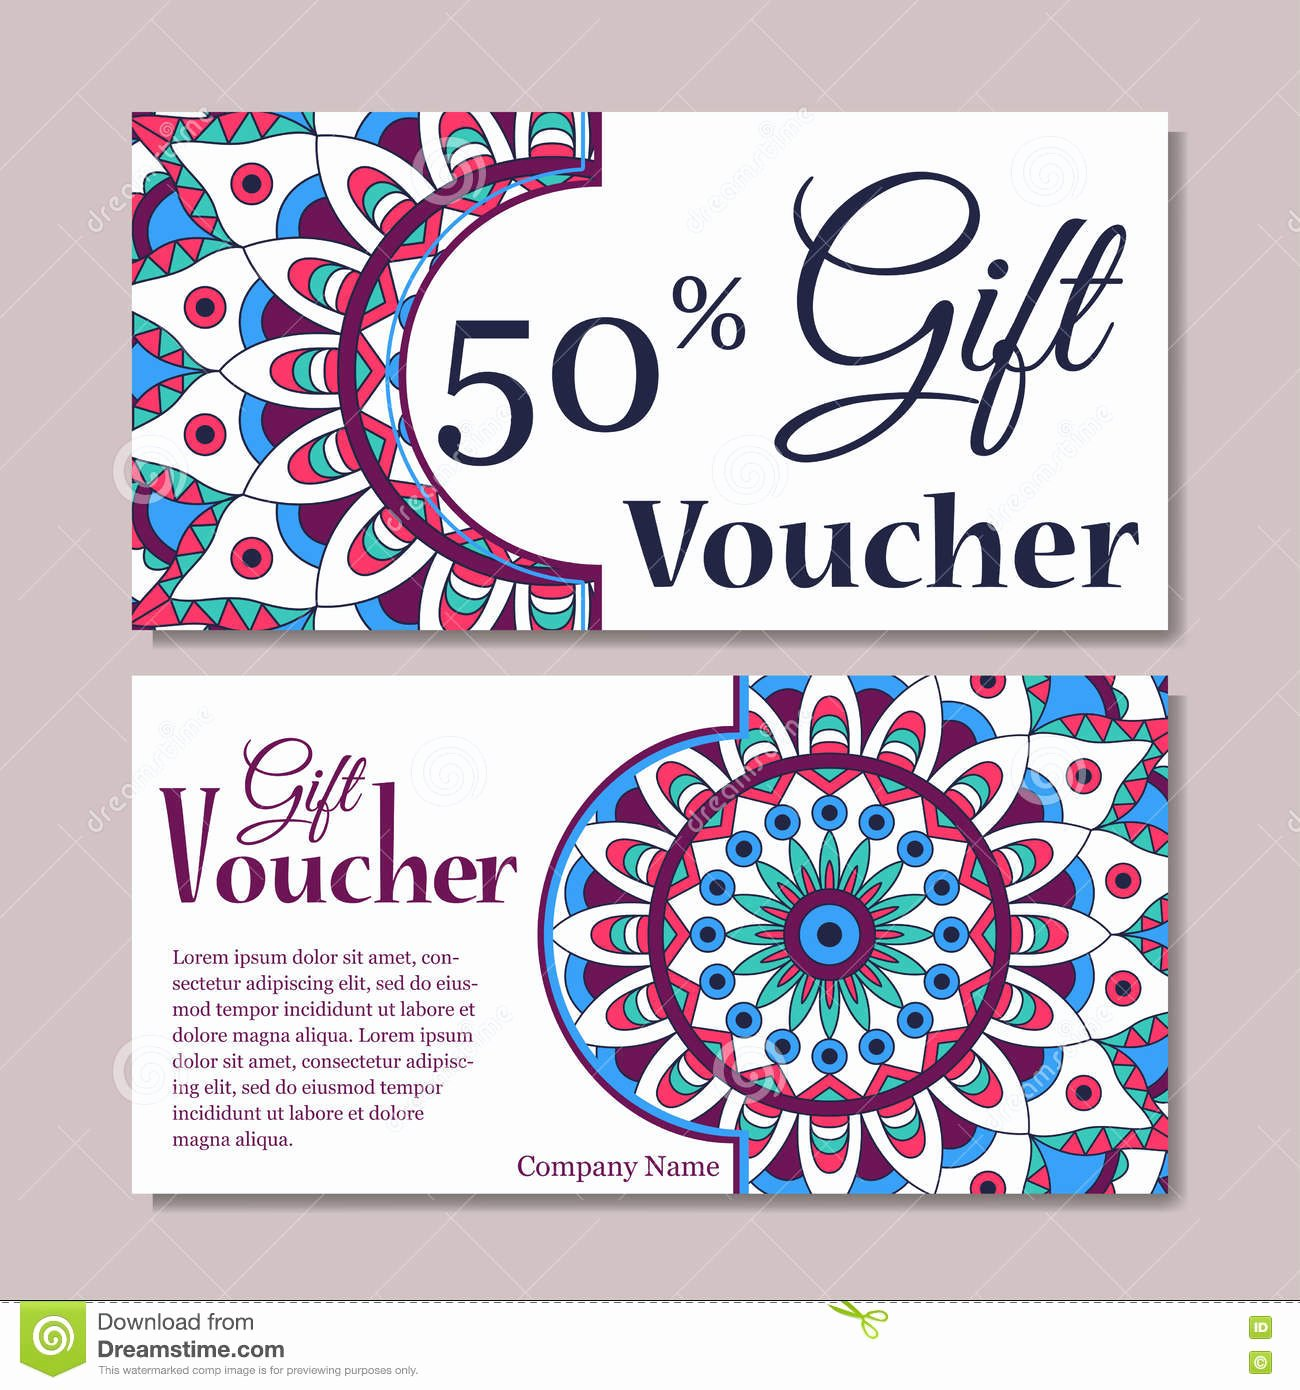 Magazine Subscription Gift Certificate Template Inspirational Gift Voucher Template with Mandala Design Certificate for